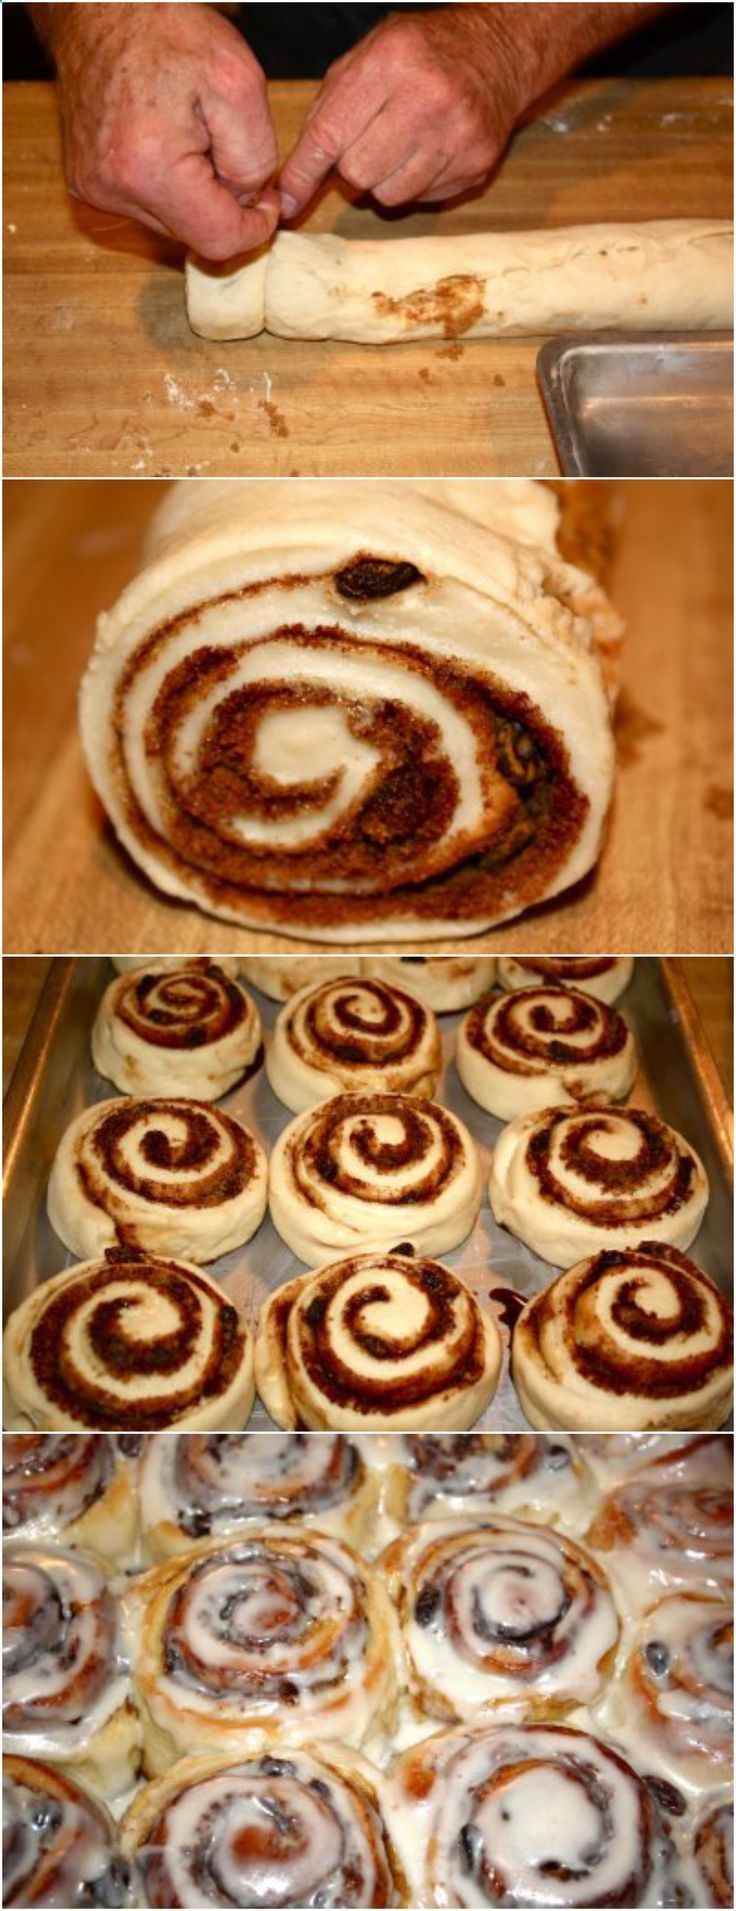 Cinnamon Roll Recipe... These are the BEST cinnamon rolls! Everyone always asks for my dads famous recipe!